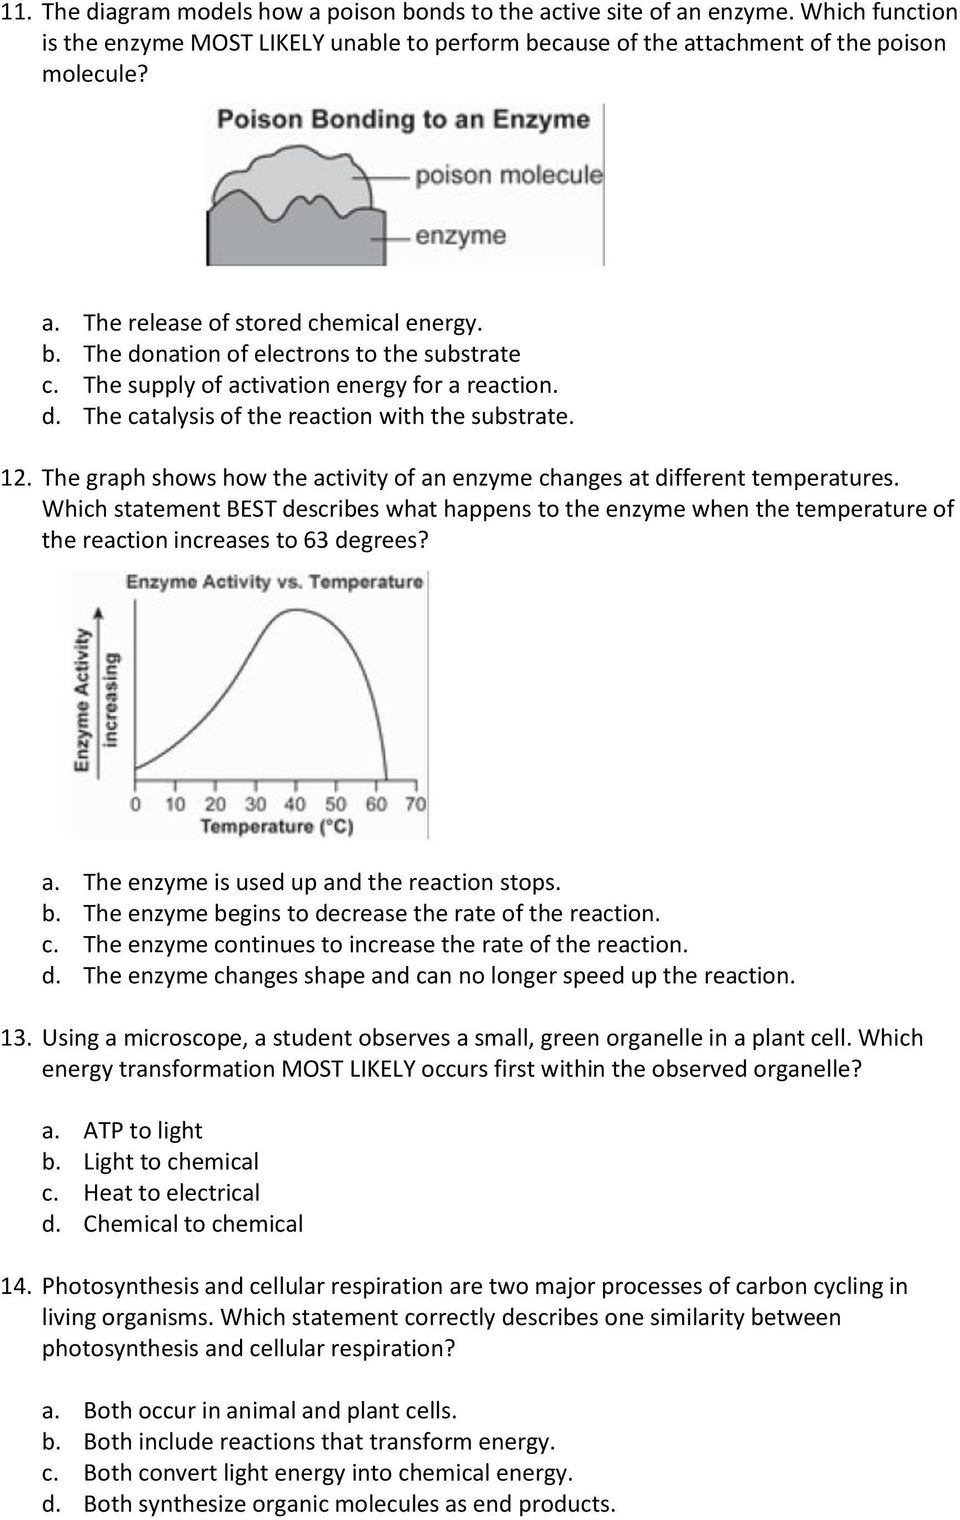 The graph shows how the activity of an enzyme changes at different temperatures. Which statement BEST describes what happens to the enzyme when the temperature of the reaction increases to 63 degrees?